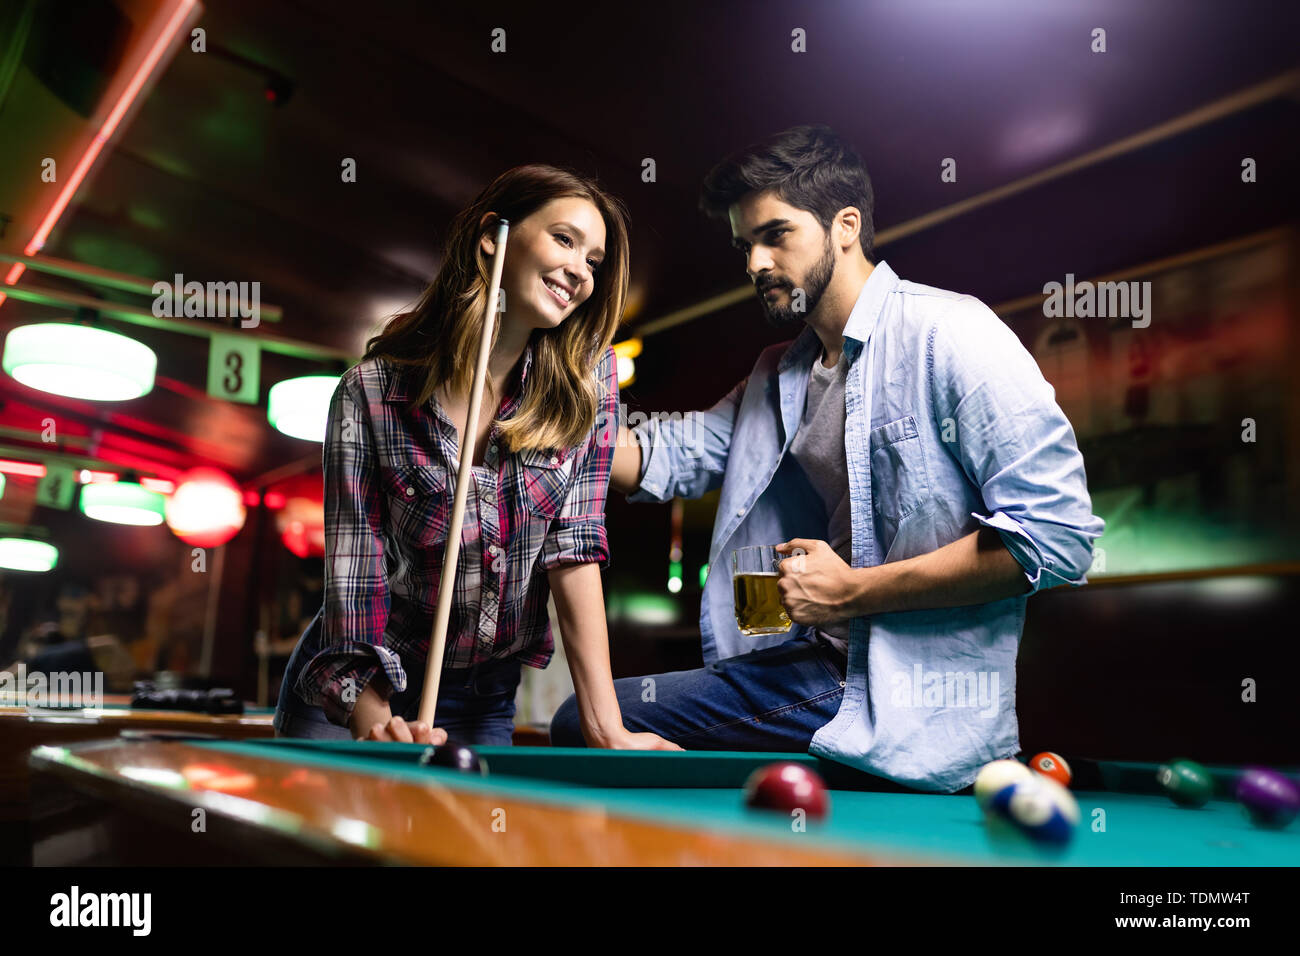 Happy young man playing snooker with his girlfriend. Happy loving couple. - Stock Image